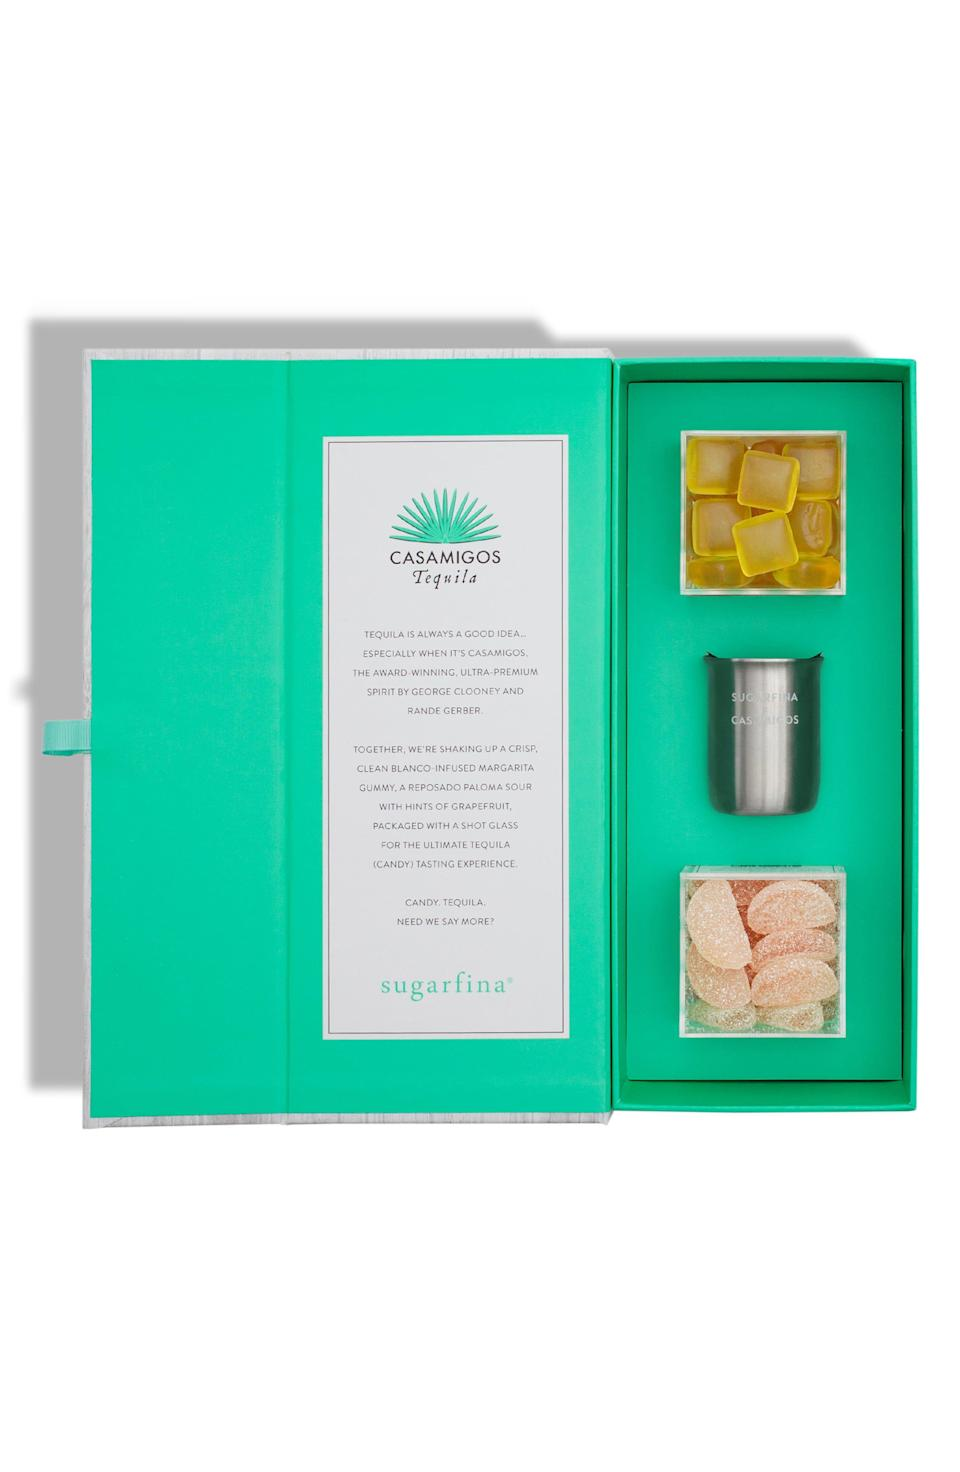 """<p><strong>SUGARFINA</strong></p><p>nordstrom.com</p><p><strong>$28.00</strong></p><p><a href=""""https://go.redirectingat.com?id=74968X1596630&url=https%3A%2F%2Fshop.nordstrom.com%2Fs%2Fsugarfina-3-piece-you-had-me-at-tequila-candy-bento-box%2F5045479&sref=https%3A%2F%2Fwww.cosmopolitan.com%2Fstyle-beauty%2Ffashion%2Fg13602855%2Fbest-gift-ideas-for-women%2F"""" rel=""""nofollow noopener"""" target=""""_blank"""" data-ylk=""""slk:Shop Now"""" class=""""link rapid-noclick-resp"""">Shop Now</a></p><p>This set includes tequila-infused gummies, sour grapefruit gummies, and a shot glass—because the best shots are ones inside fancy candies.</p>"""